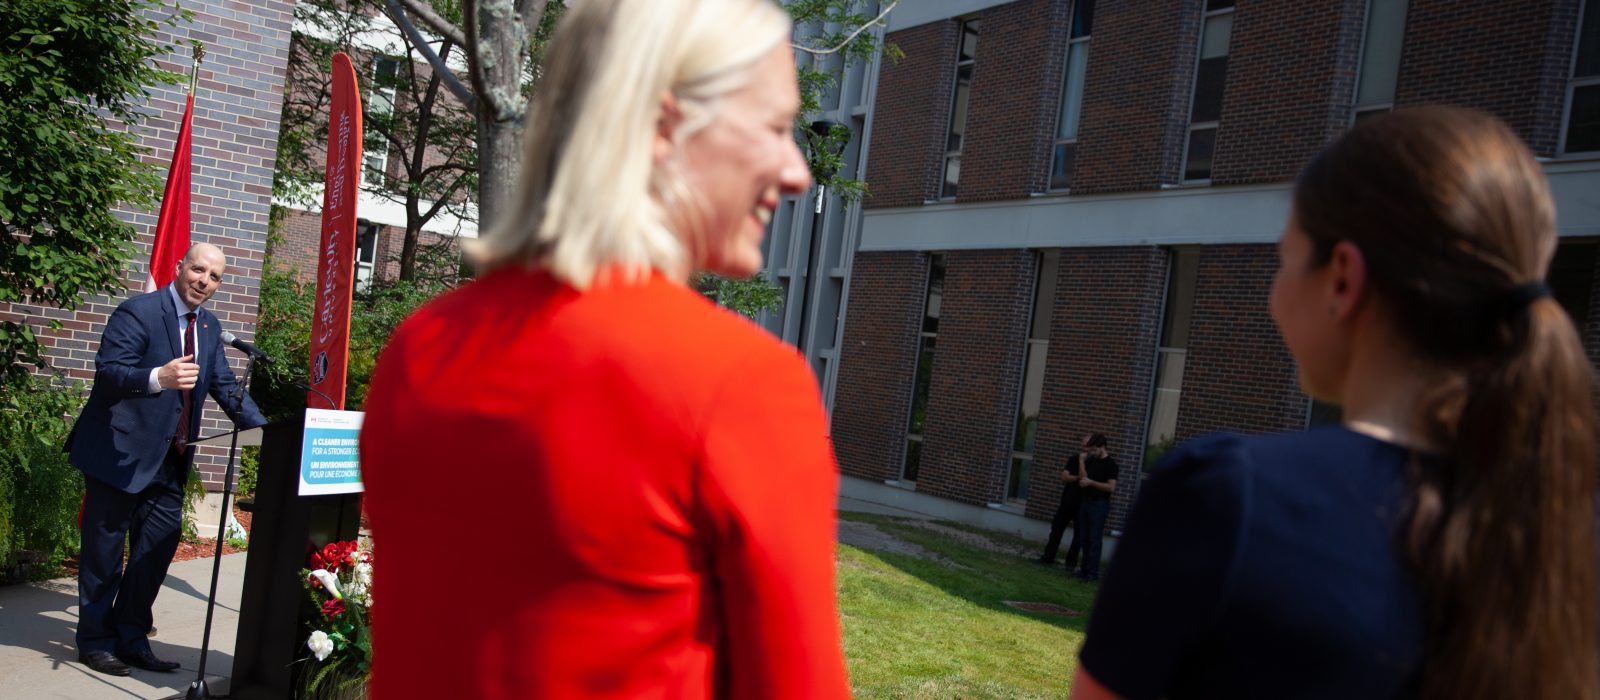 Carleton's President and Vice-Chancellor Benoit-Antoine Bacon stands outdoors at a podium and is smiling at Minister McKenna and Professor Cynthia Cruickshank